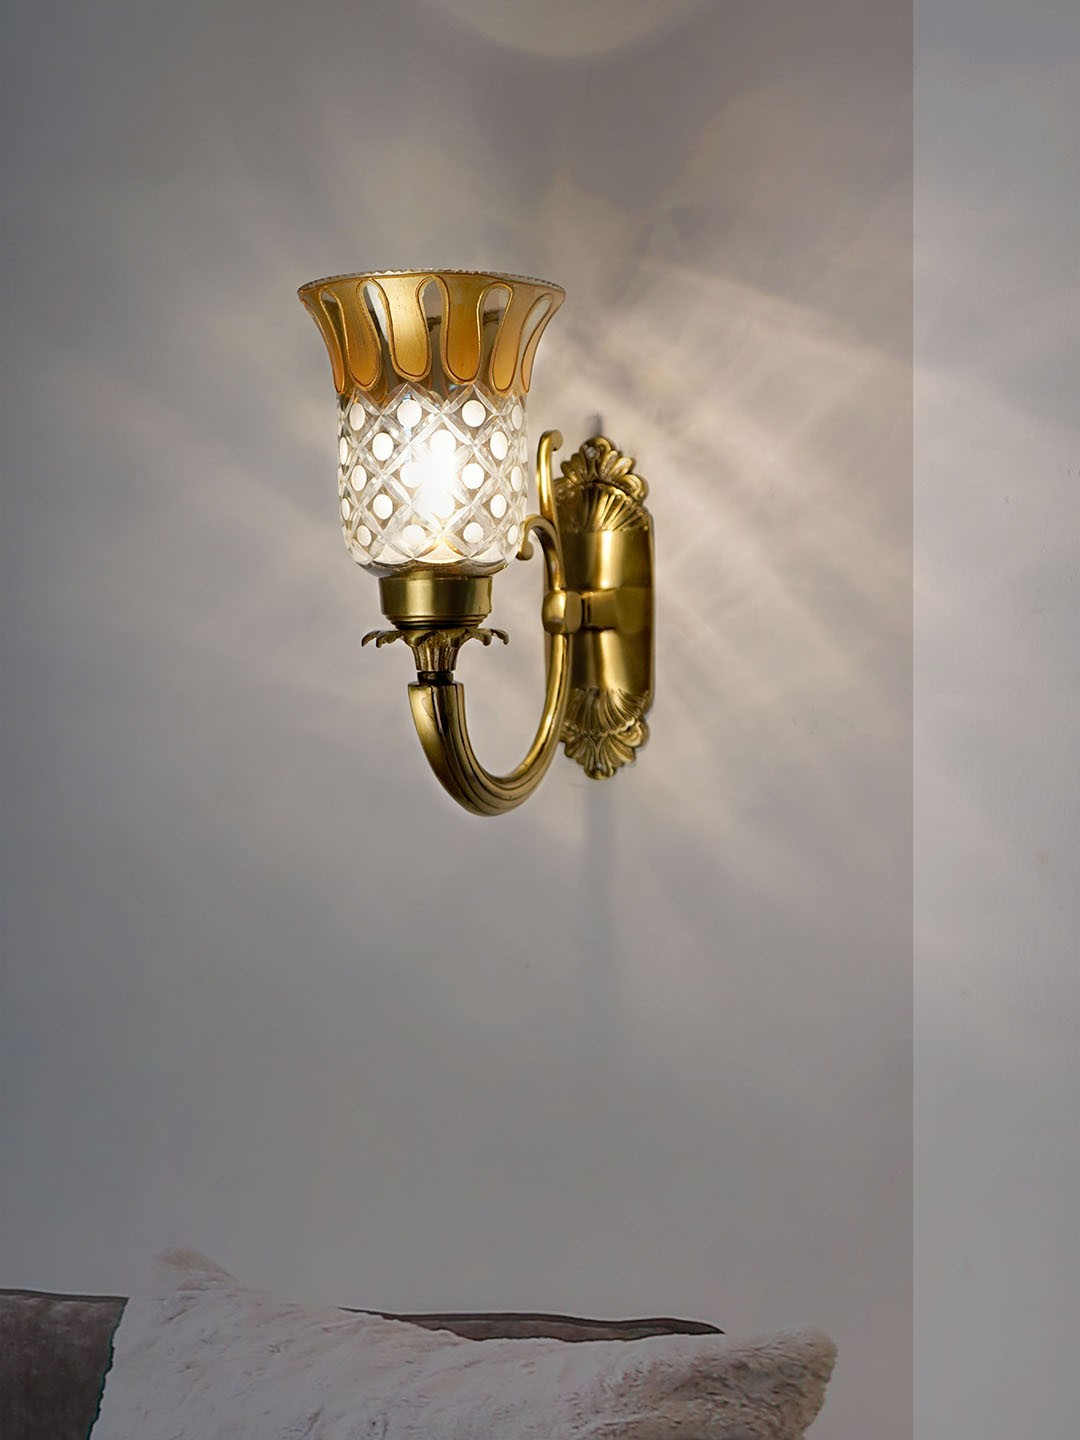 Royal Metal and Glass Single Wall Lamp - (Golden Work with Antique)